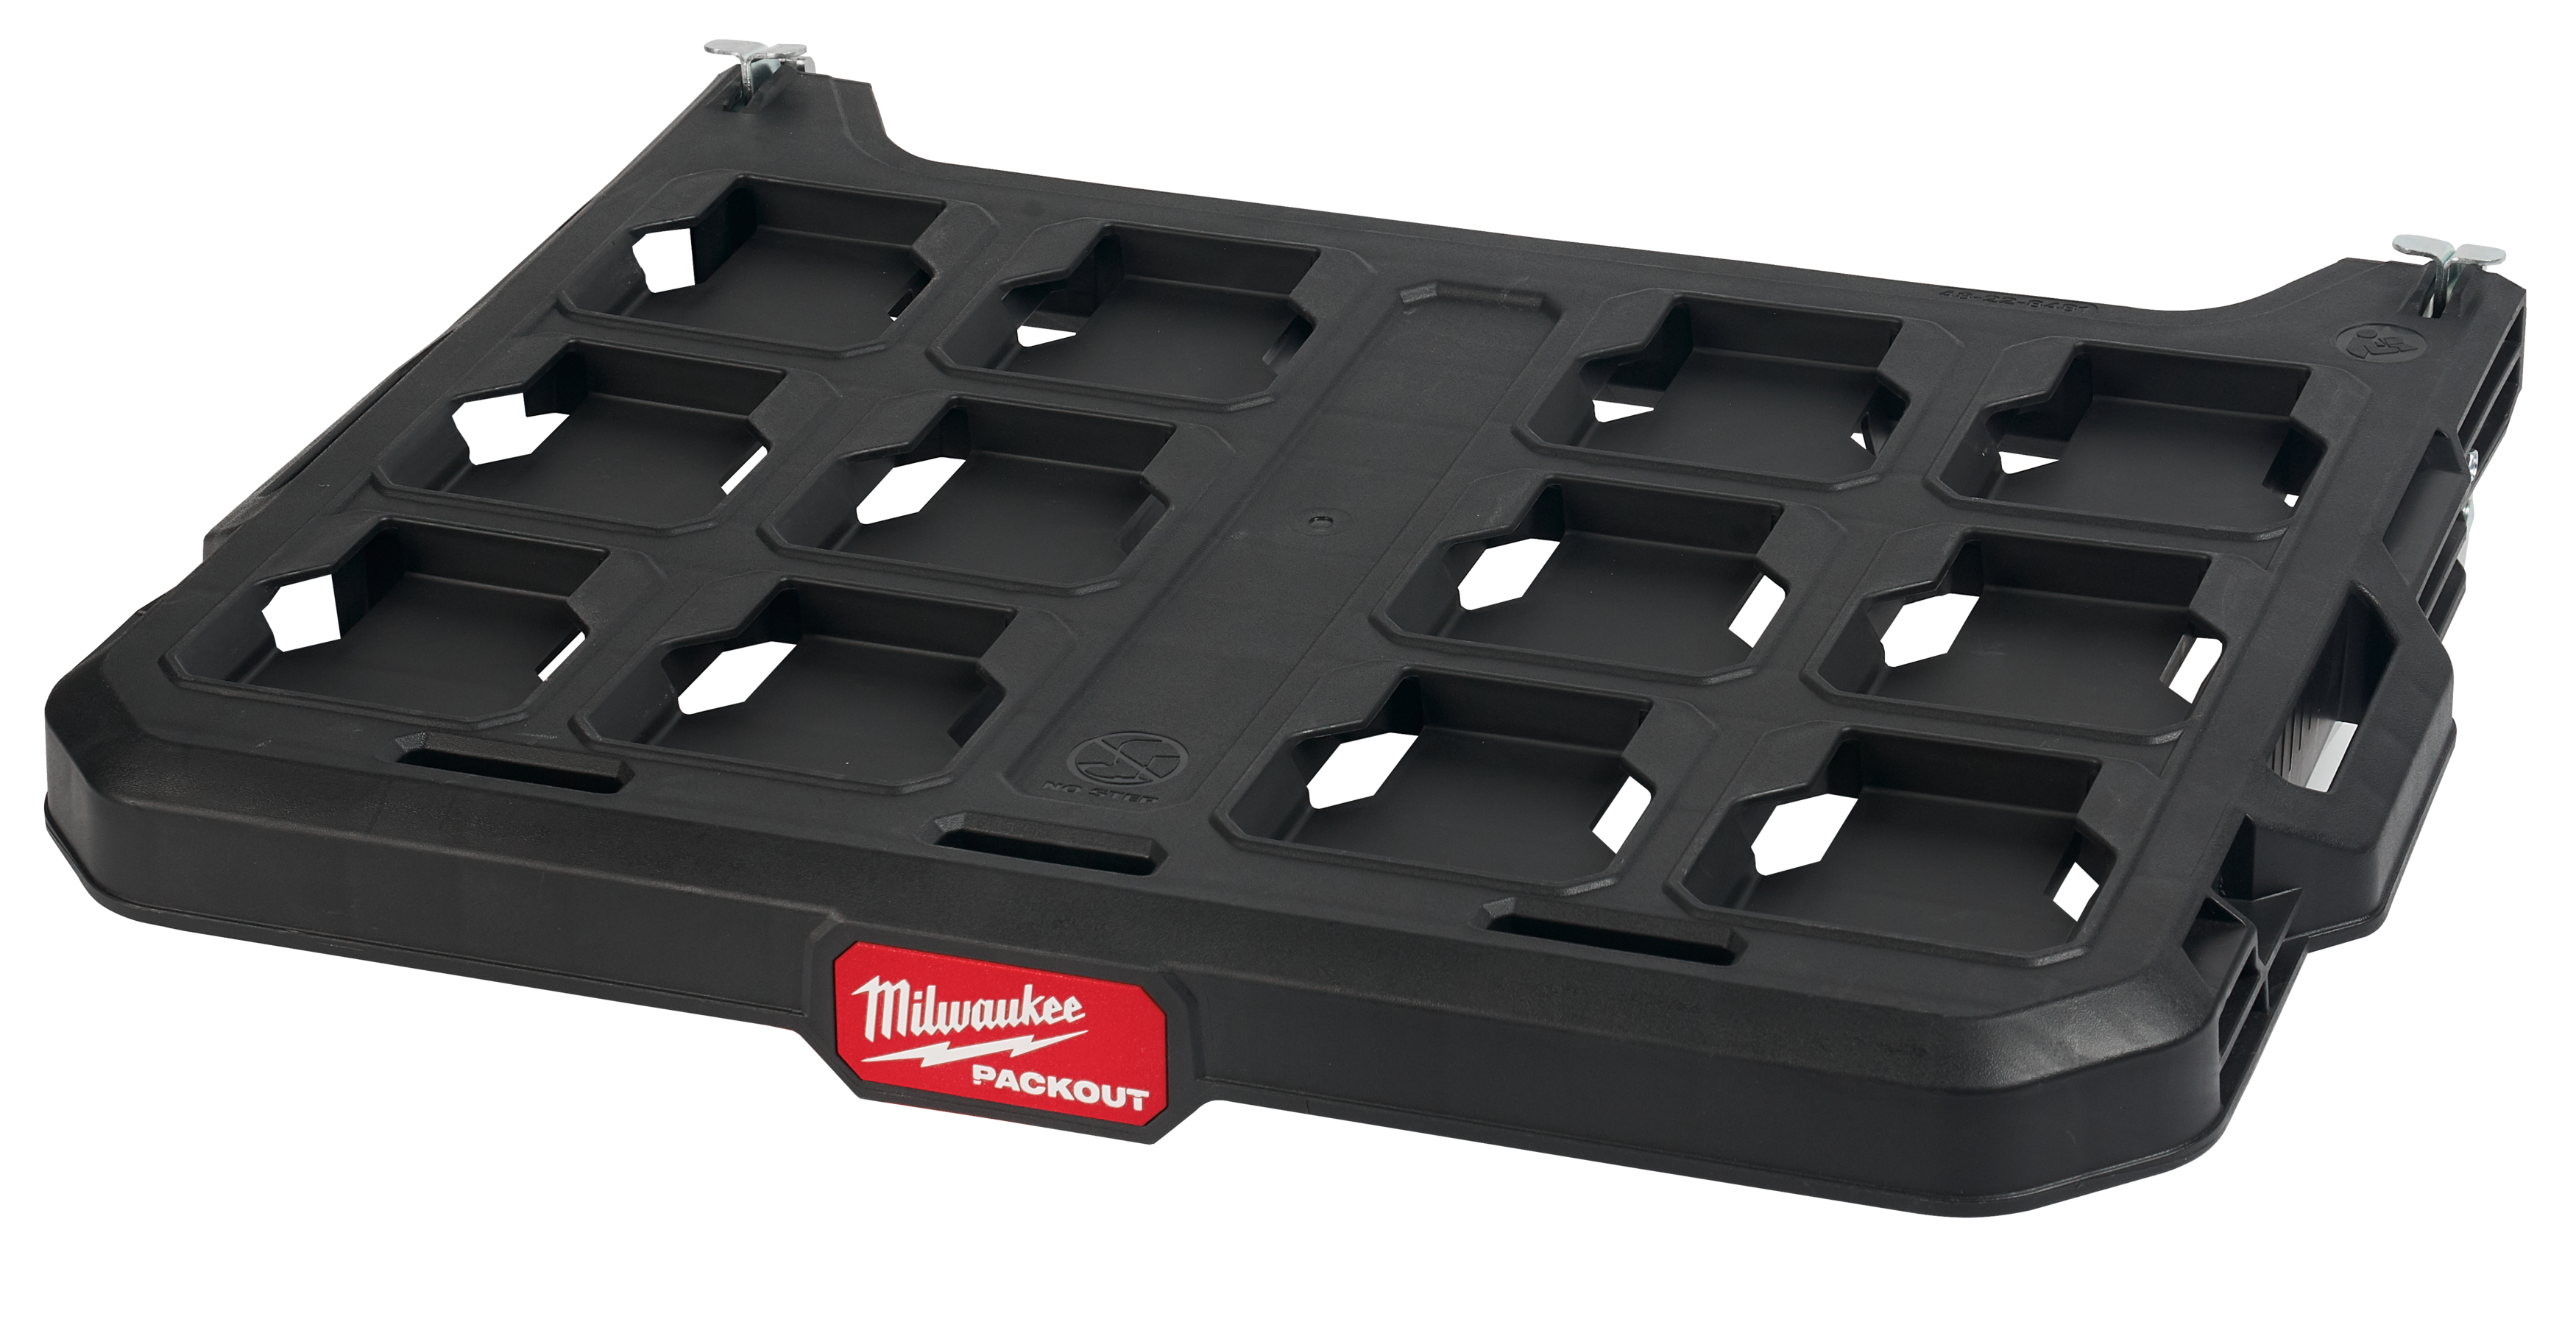 MILWAUKEE PACKOUT - PACKOUT RACKING SYSTEM SINGLE SHELF - 4932478711